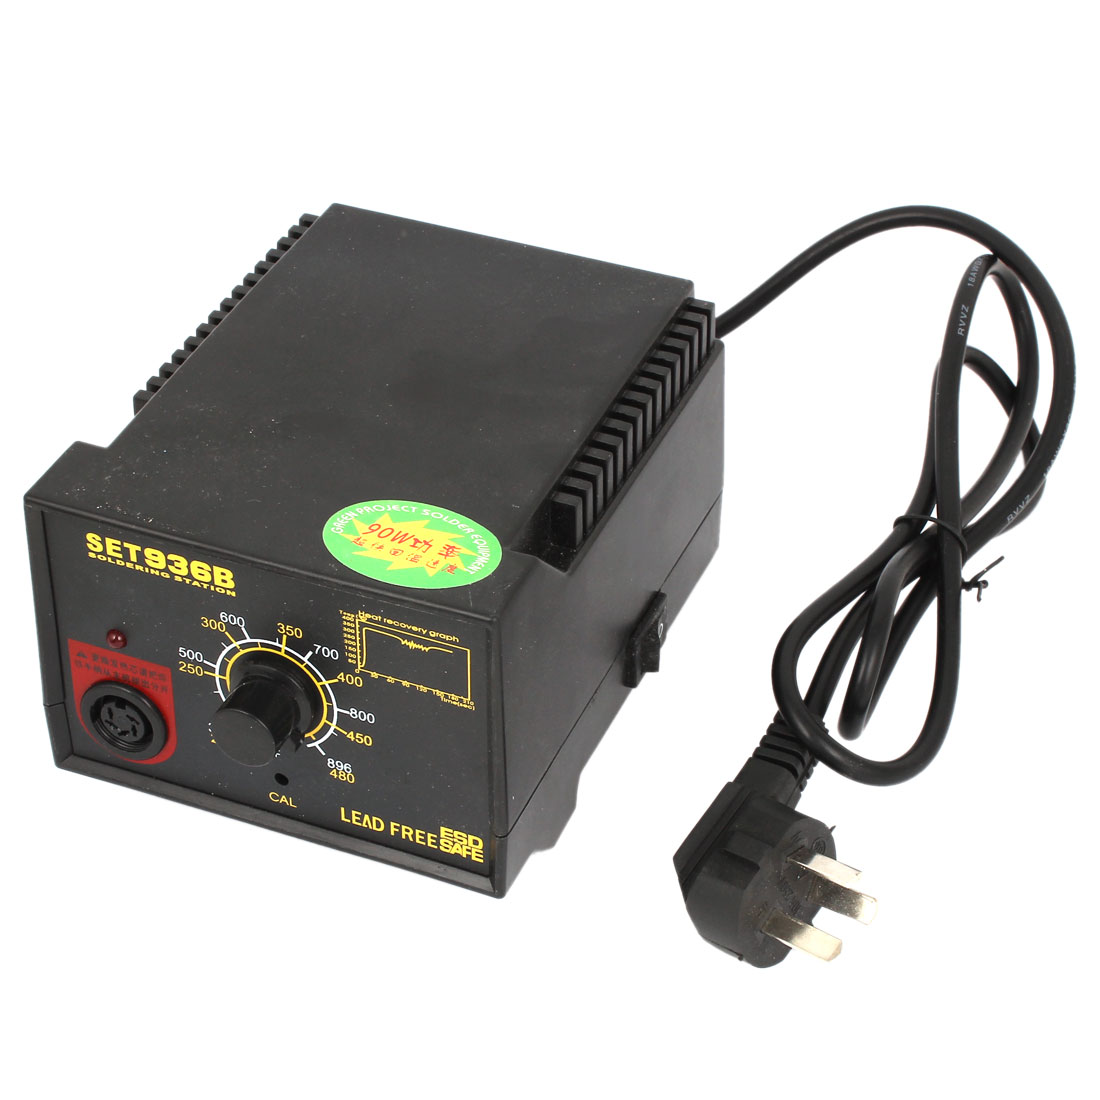 AU AC 250V 10A 90W Double Reading Sensor Soldering Station Black w Stand Bracket